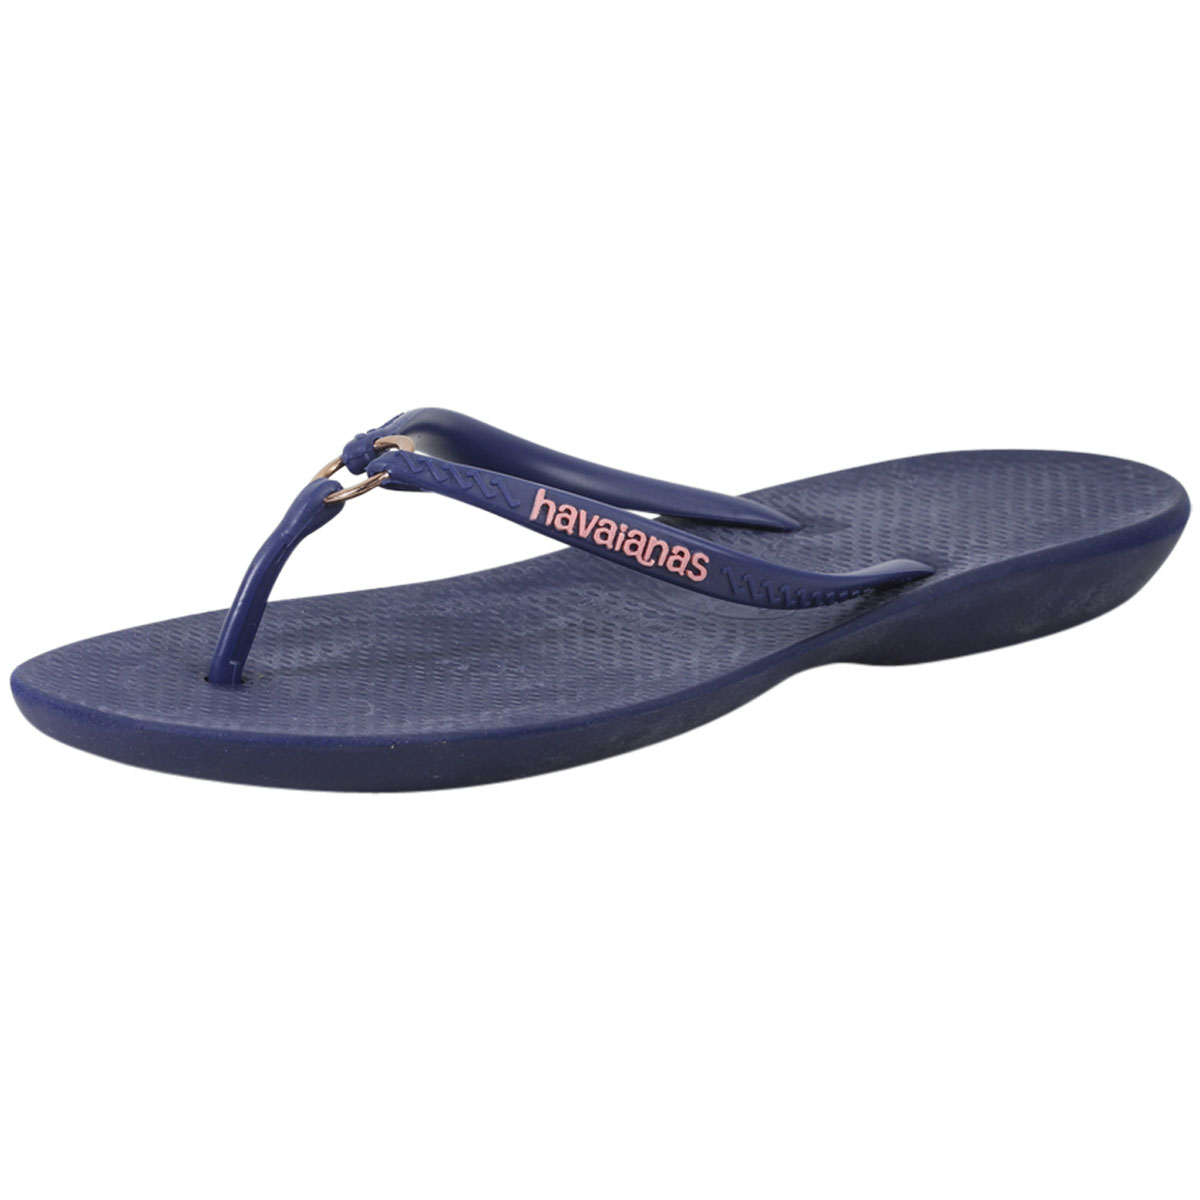 20c701e15dc74a Havaianas Women s Ring Flip Flops Sandals Shoes